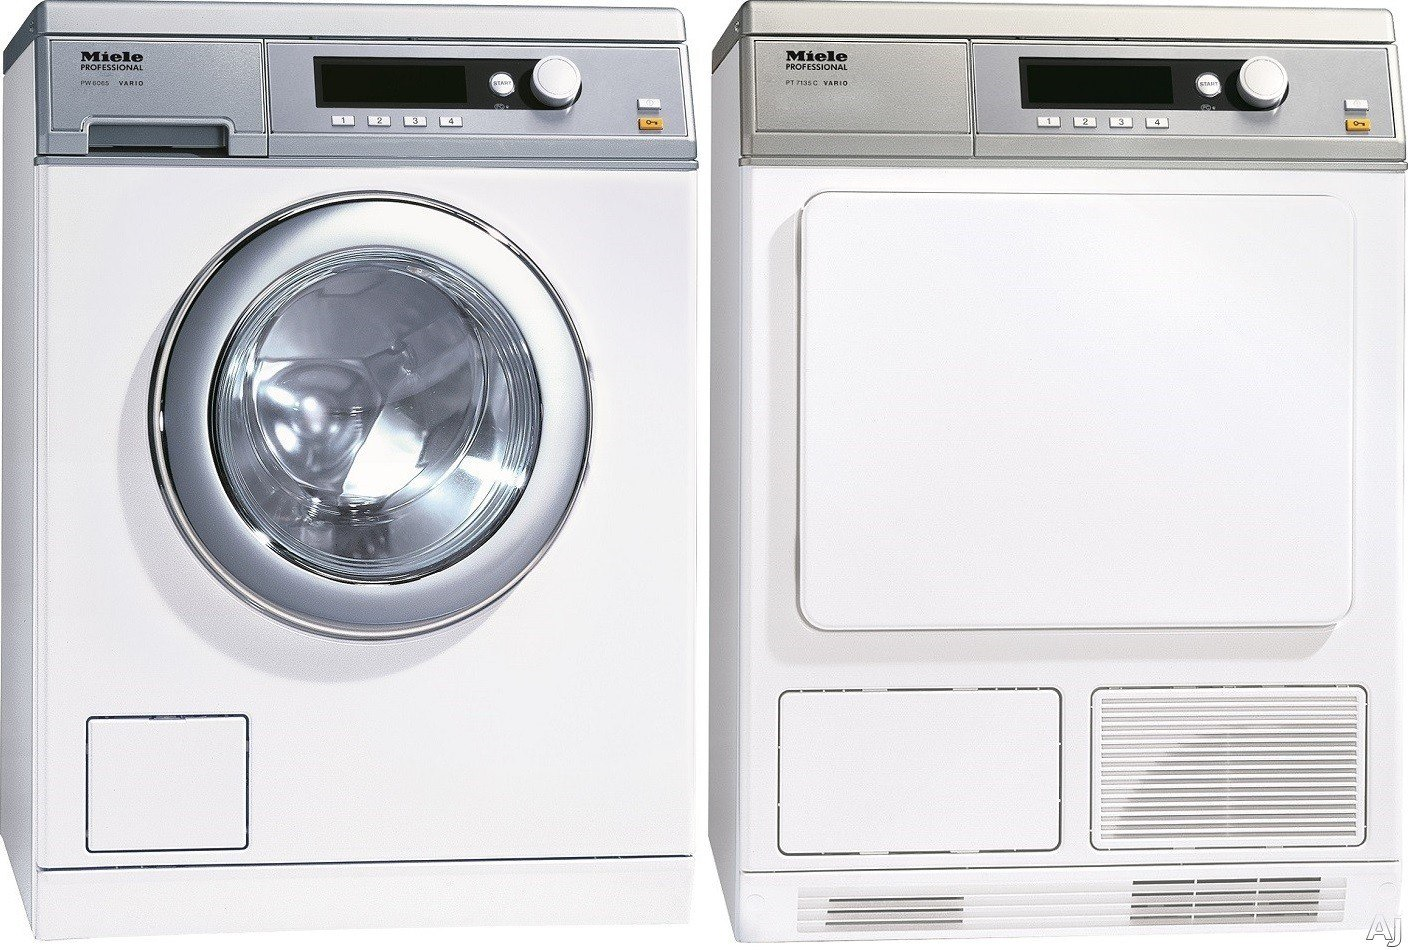 Miele stackable washer dryer ventless - Miele Miwadrew46068 Side By Side Washer Dryer Set With Front Load Washer And Electric Dryer In White